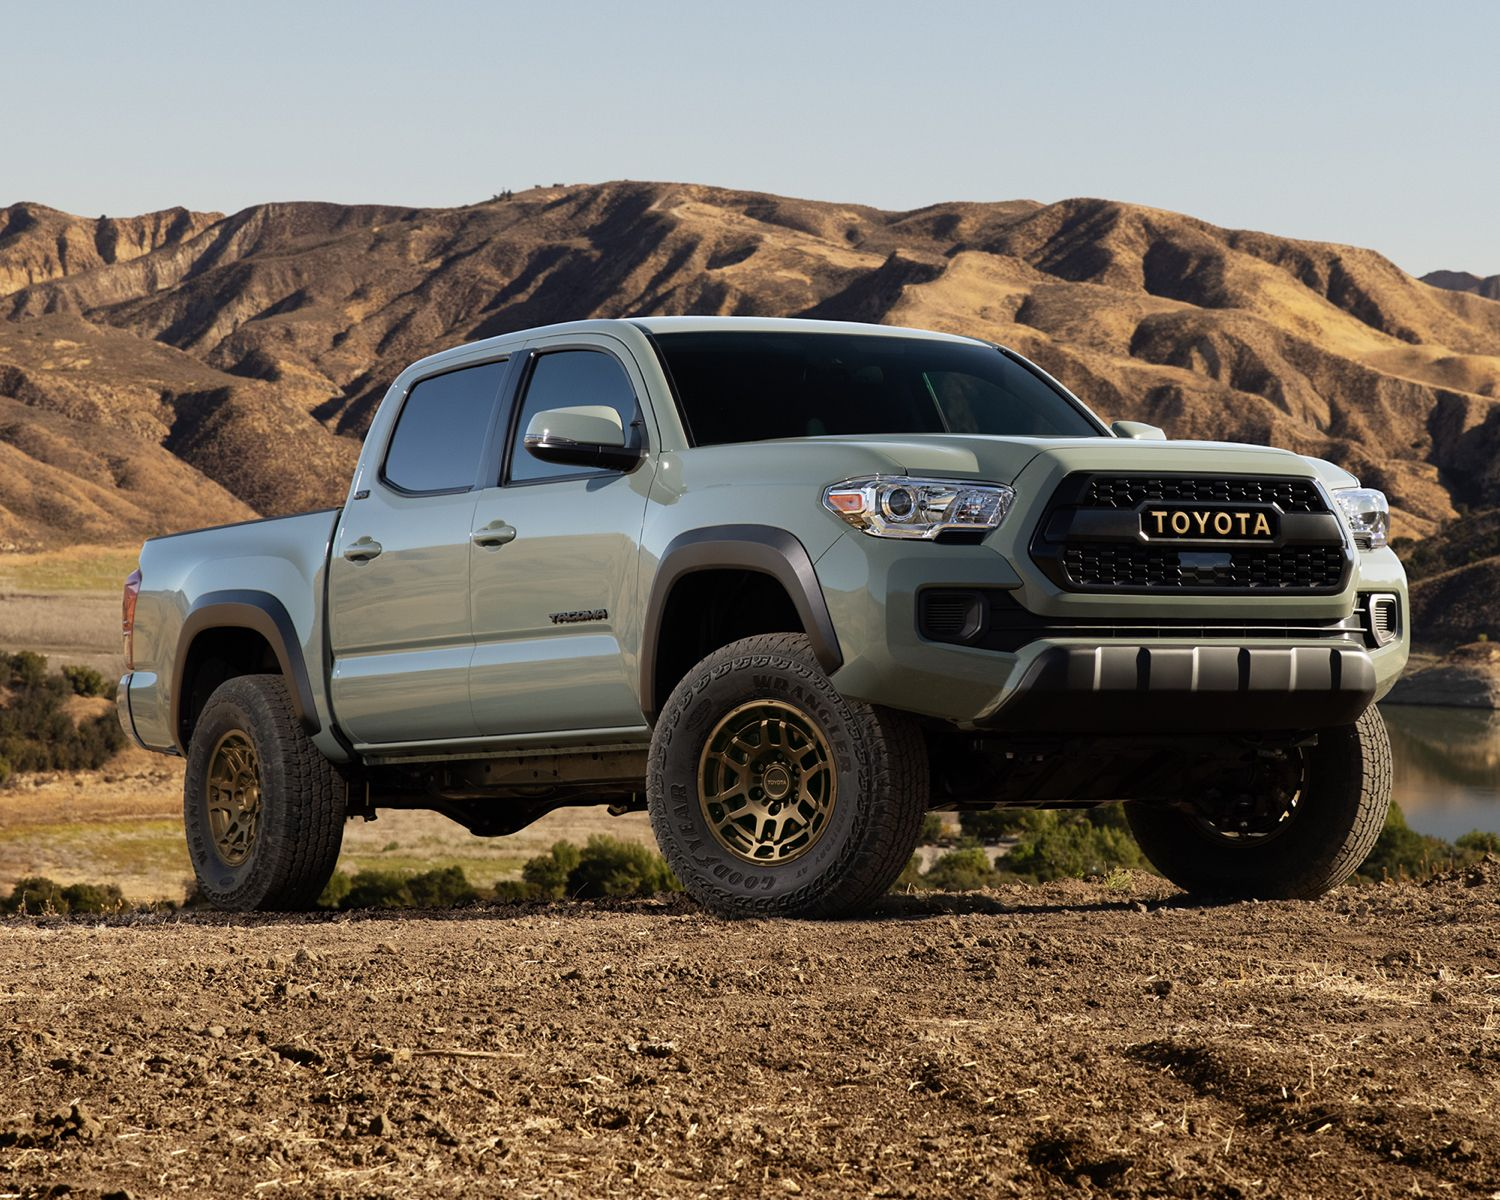 Tacoma 4X4 Double Cab Trail in Lunar Rock